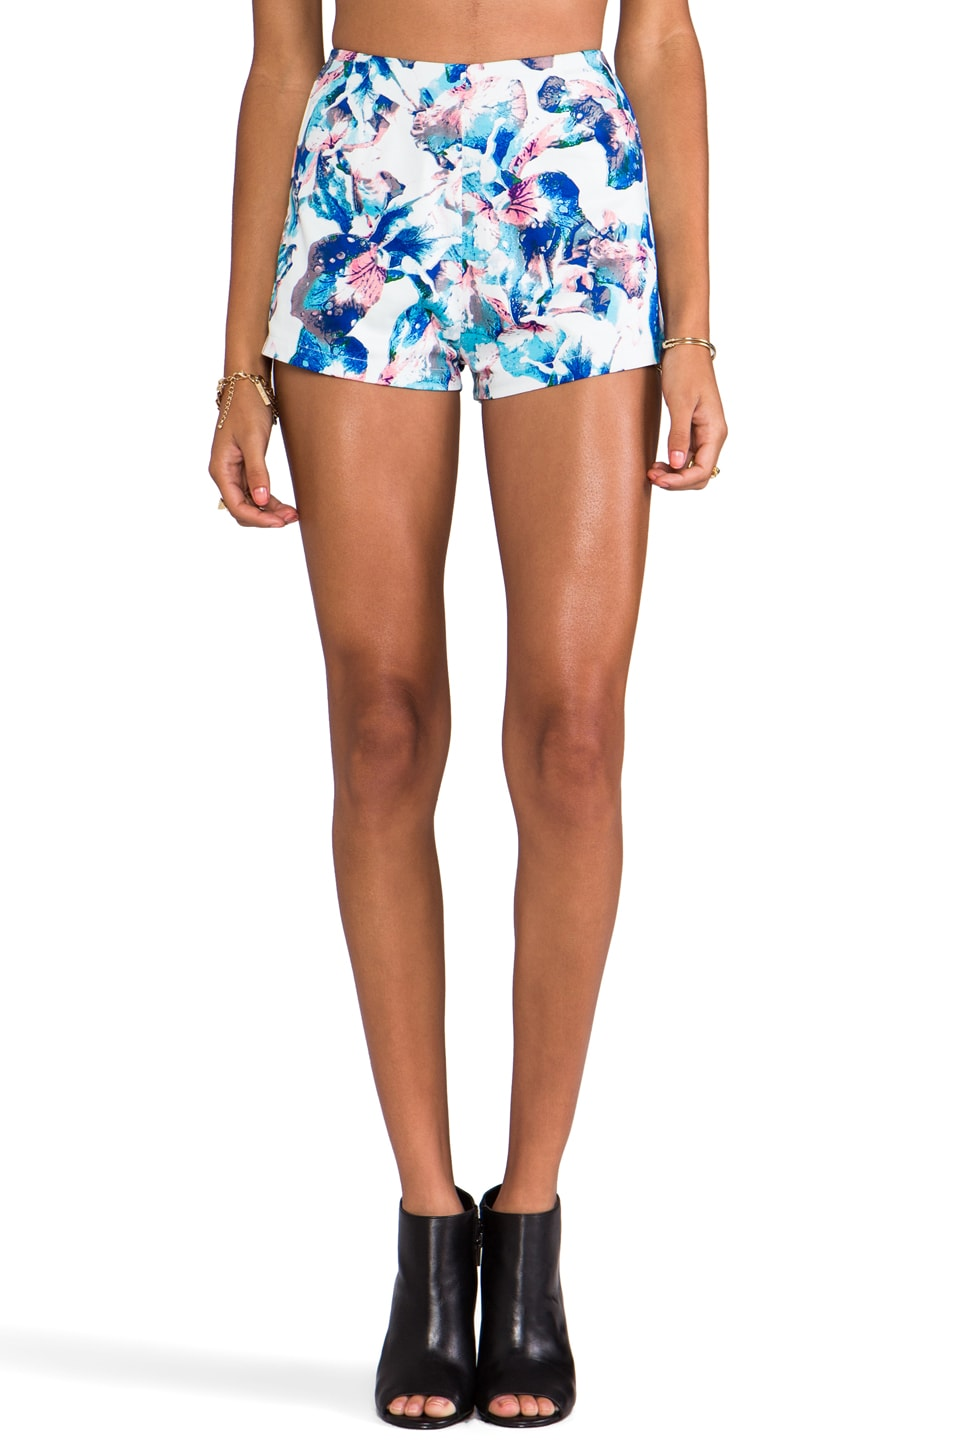 Casper & Pearl Cali High Waisted Short in Blue Floral